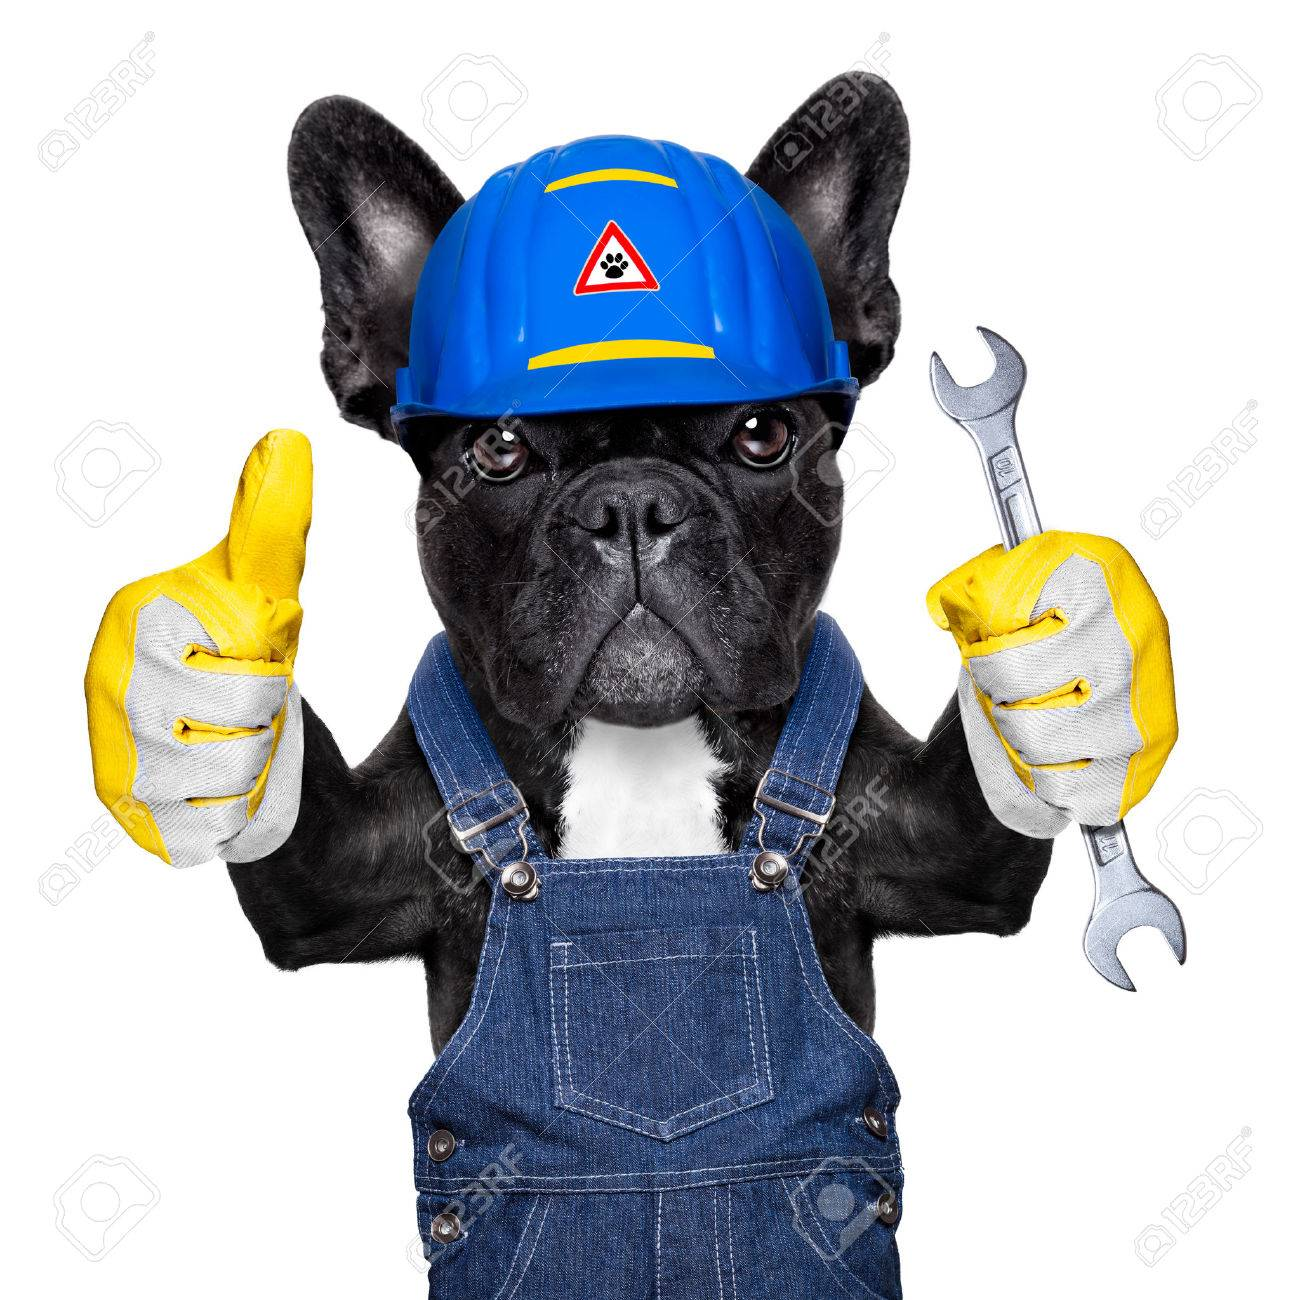 handyman dog worker with helmet and wrench in hand, ready to repair, fix everything at home, isolated on white background Stock Photo - 43517883